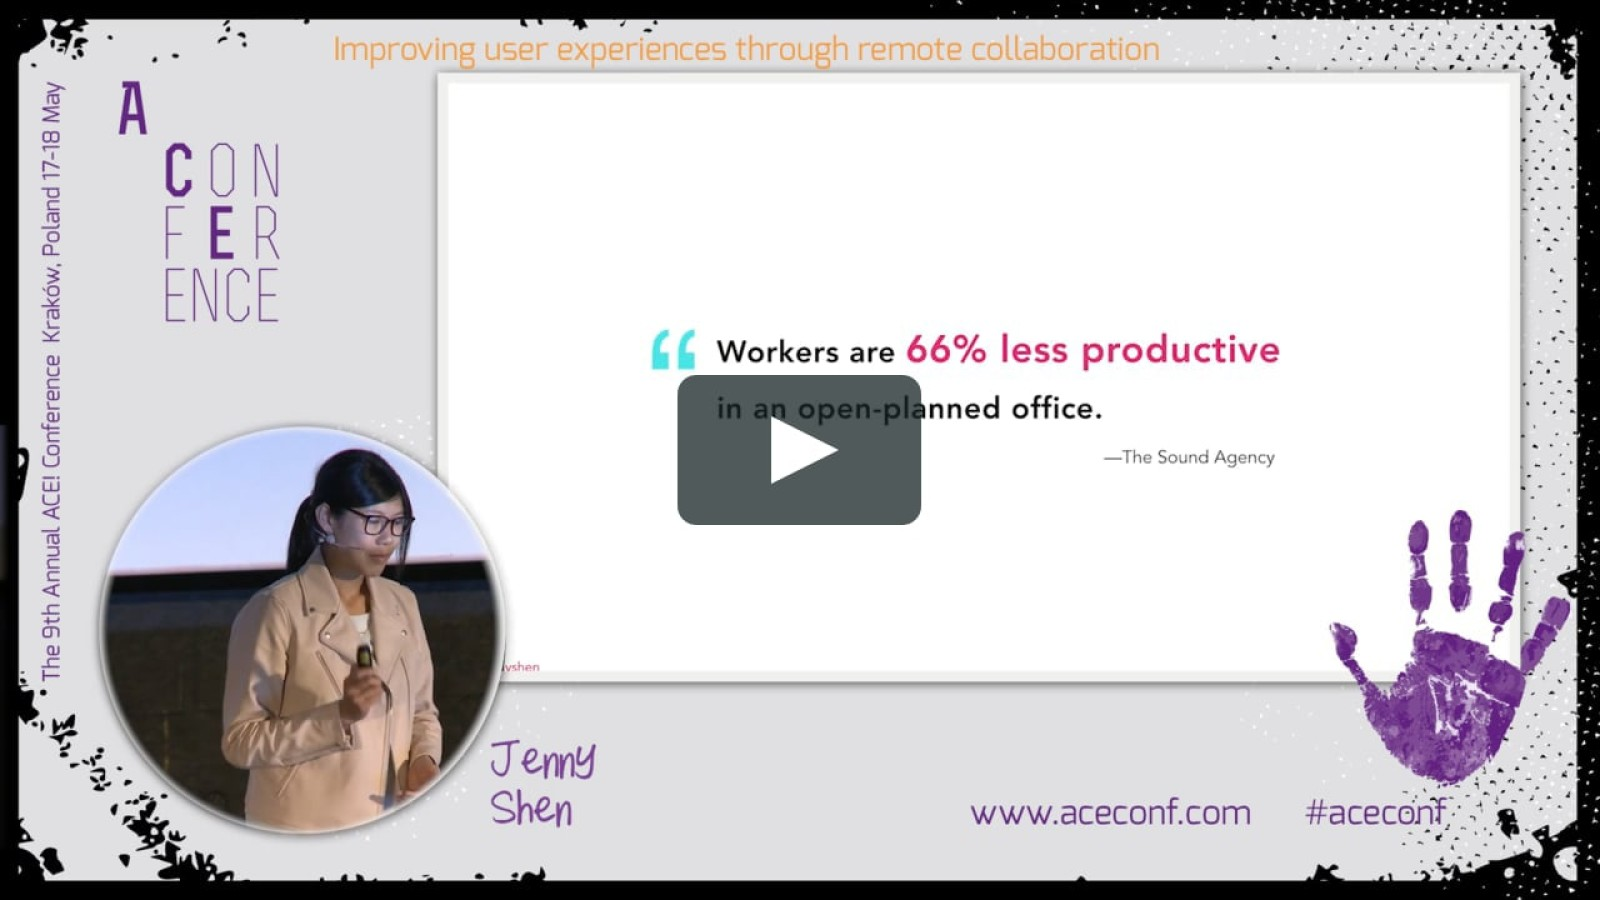 Out of Office: Improving user experiences through remote collaboration